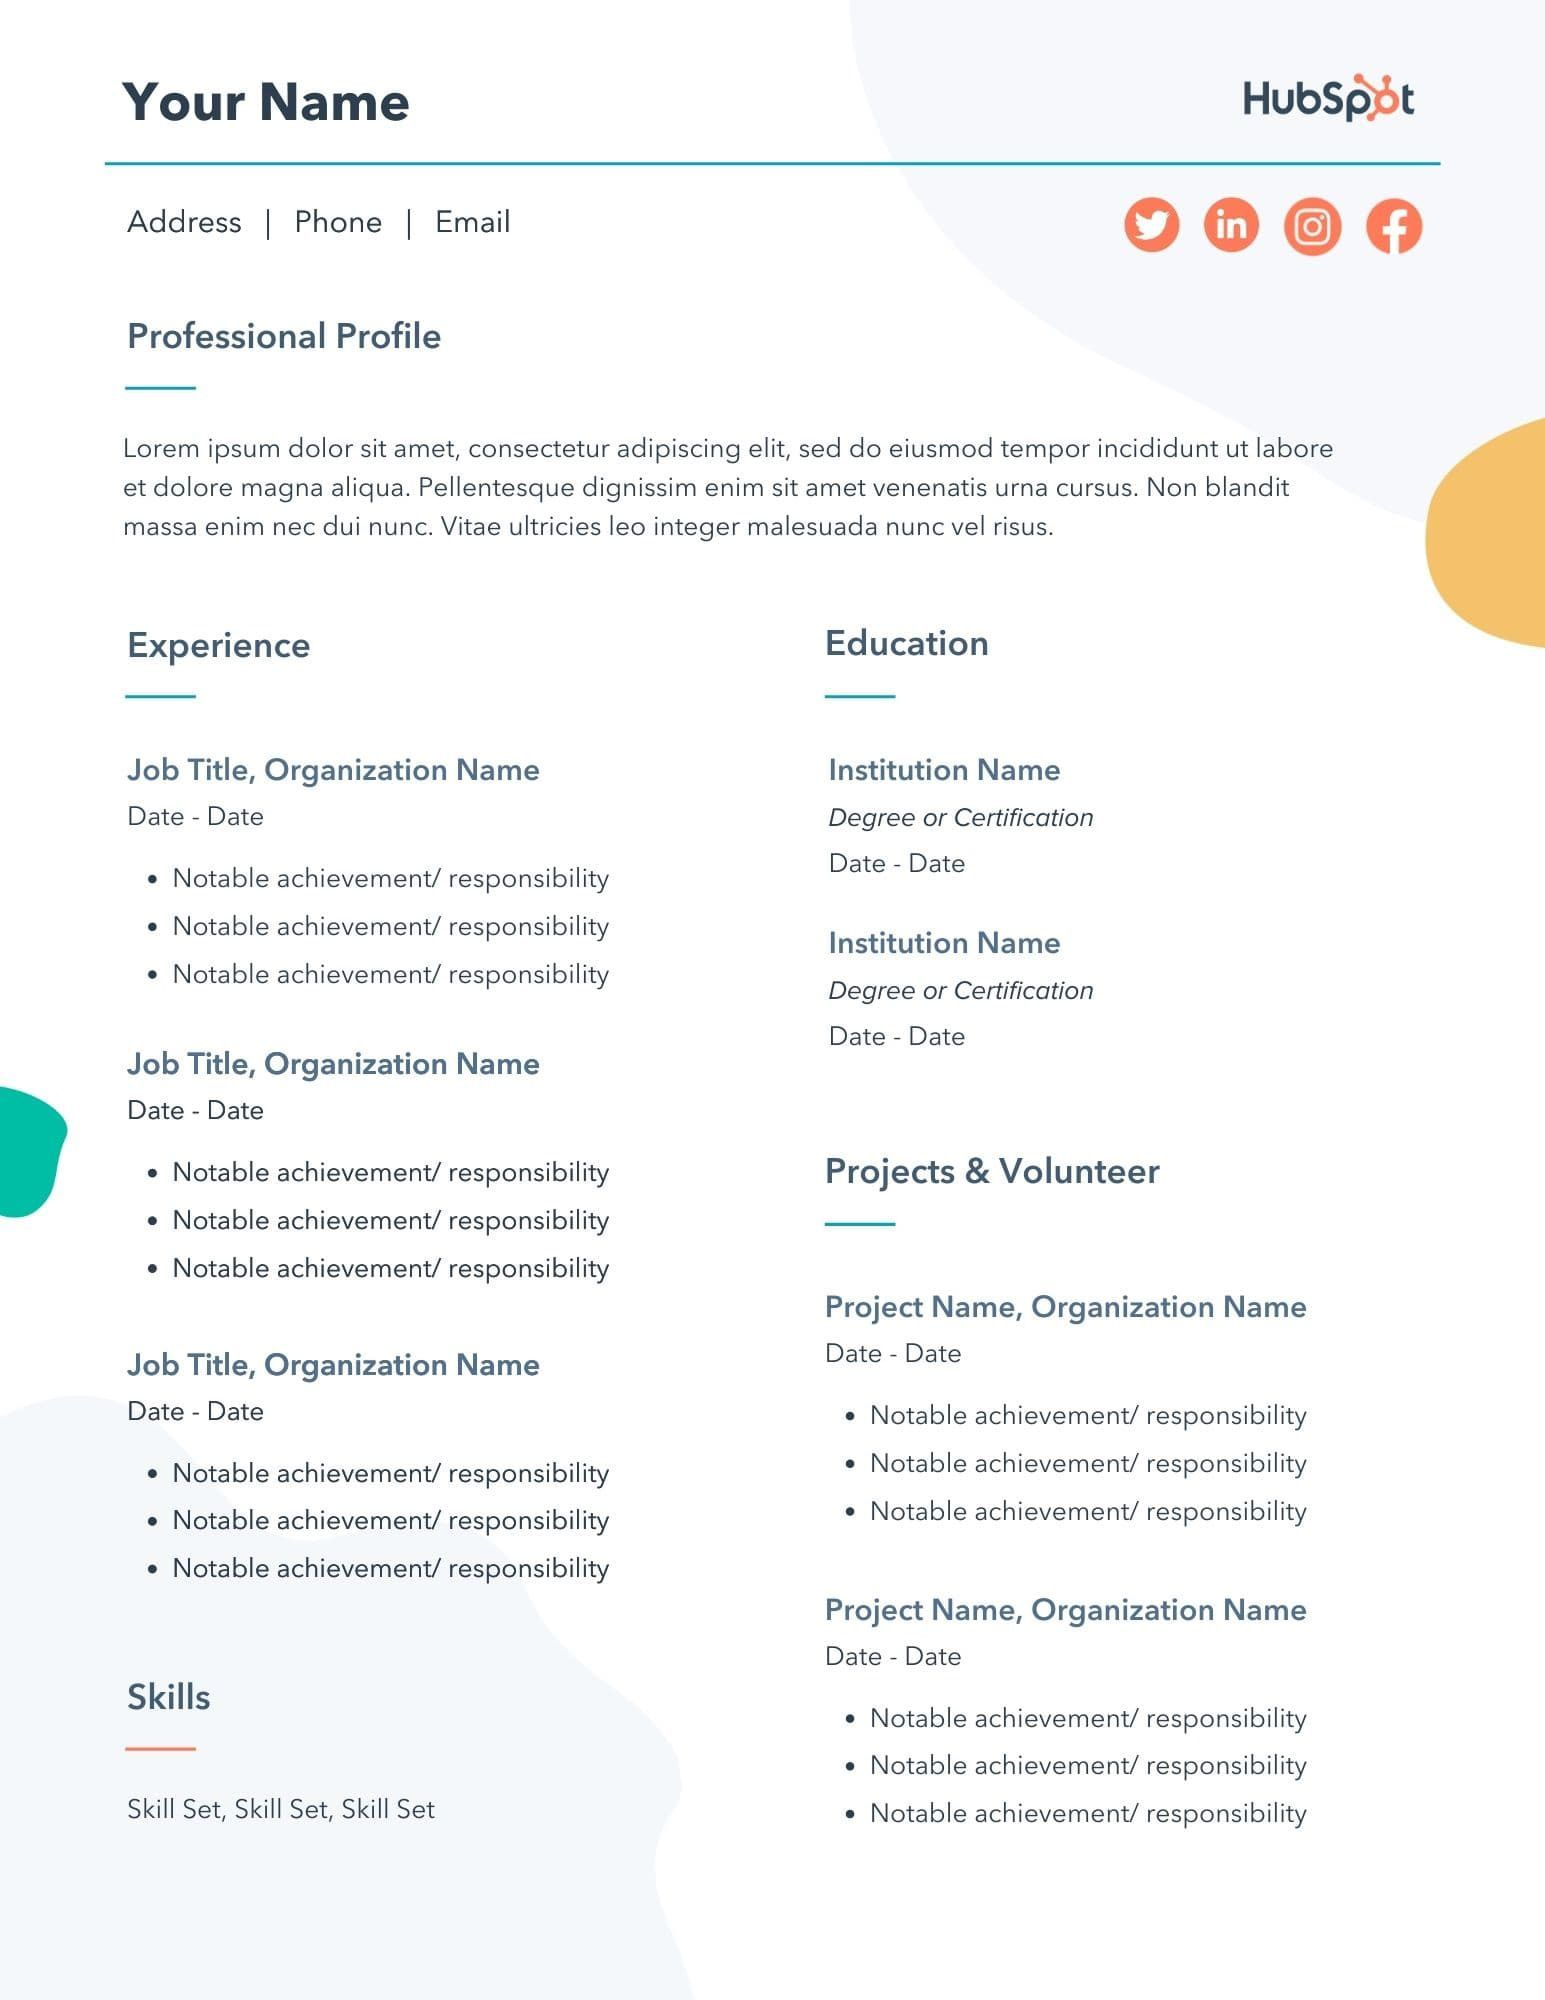 009 Impressive Make A Resume Template In Word Image  How To 2010 2007Full